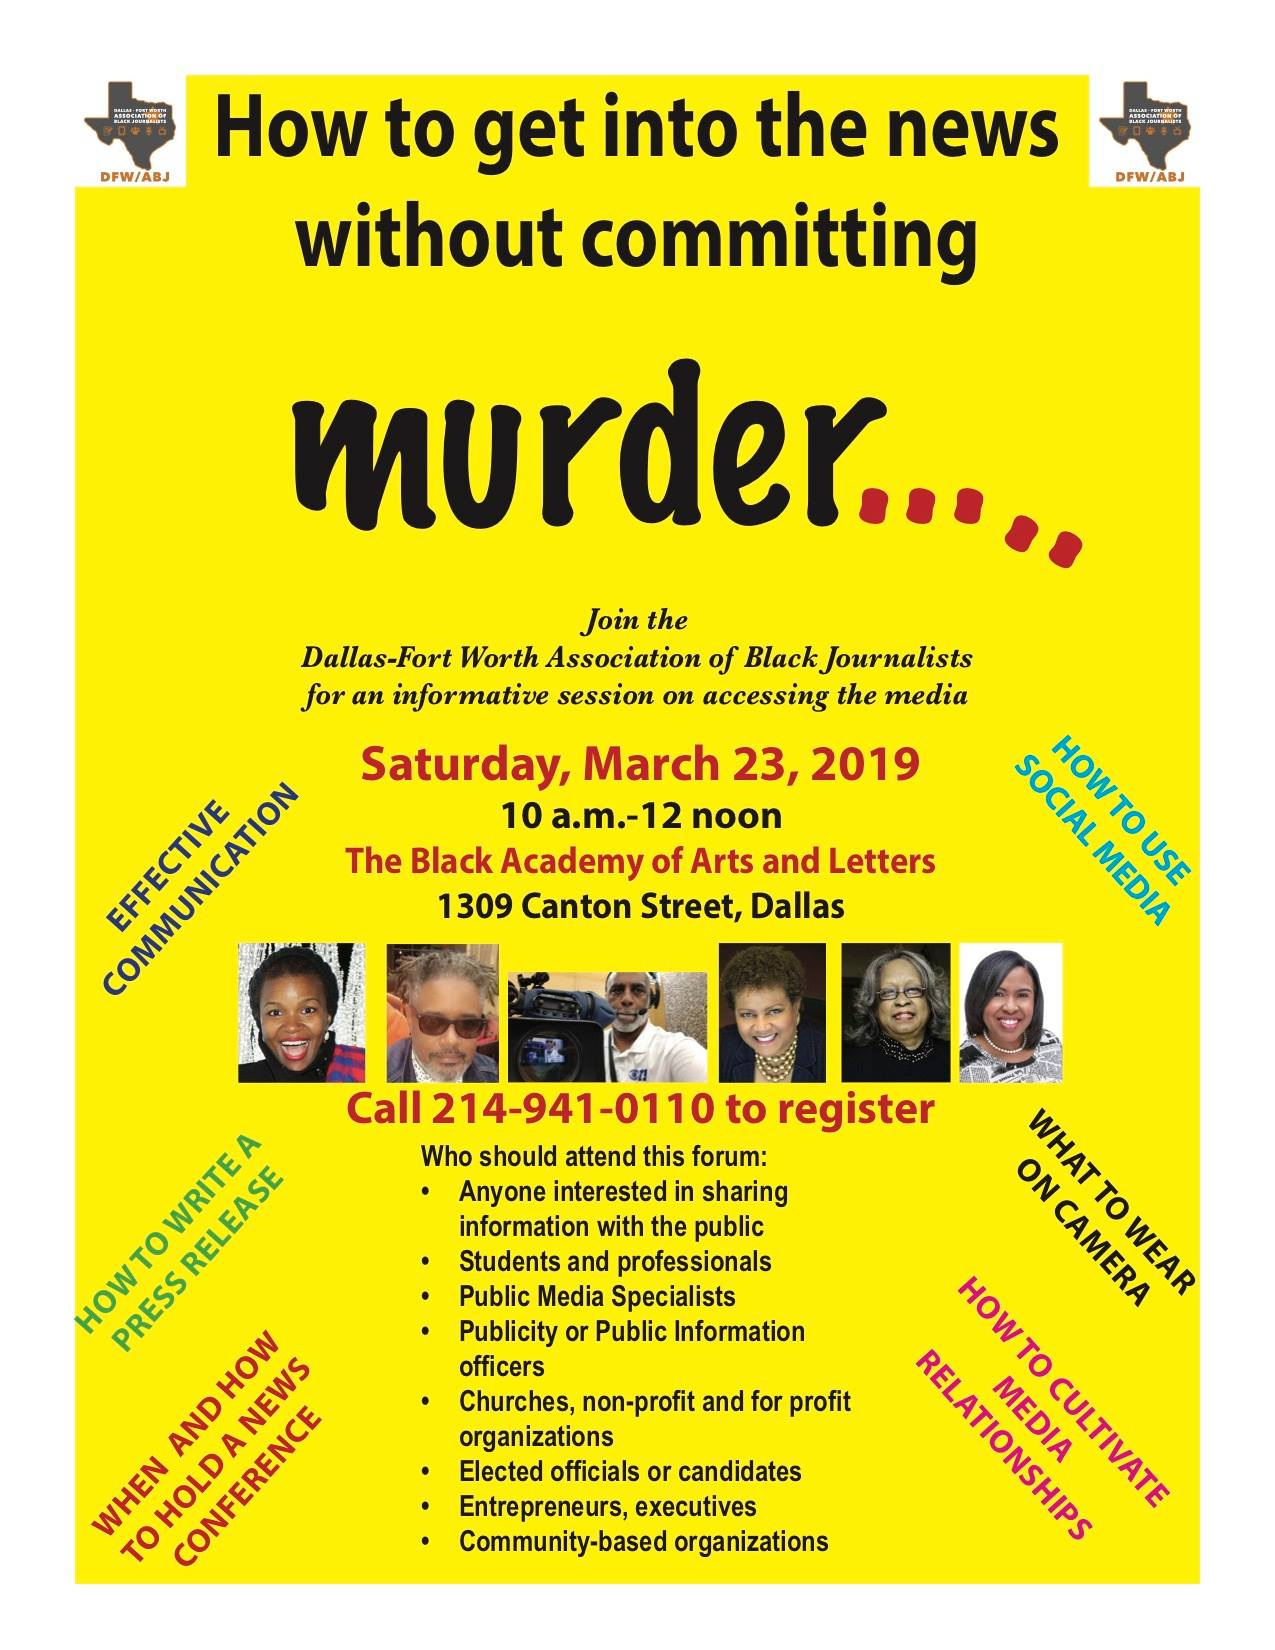 How to Get Into the News Without Committing Murder…a DFW-ABJ Event: March 23, 2019